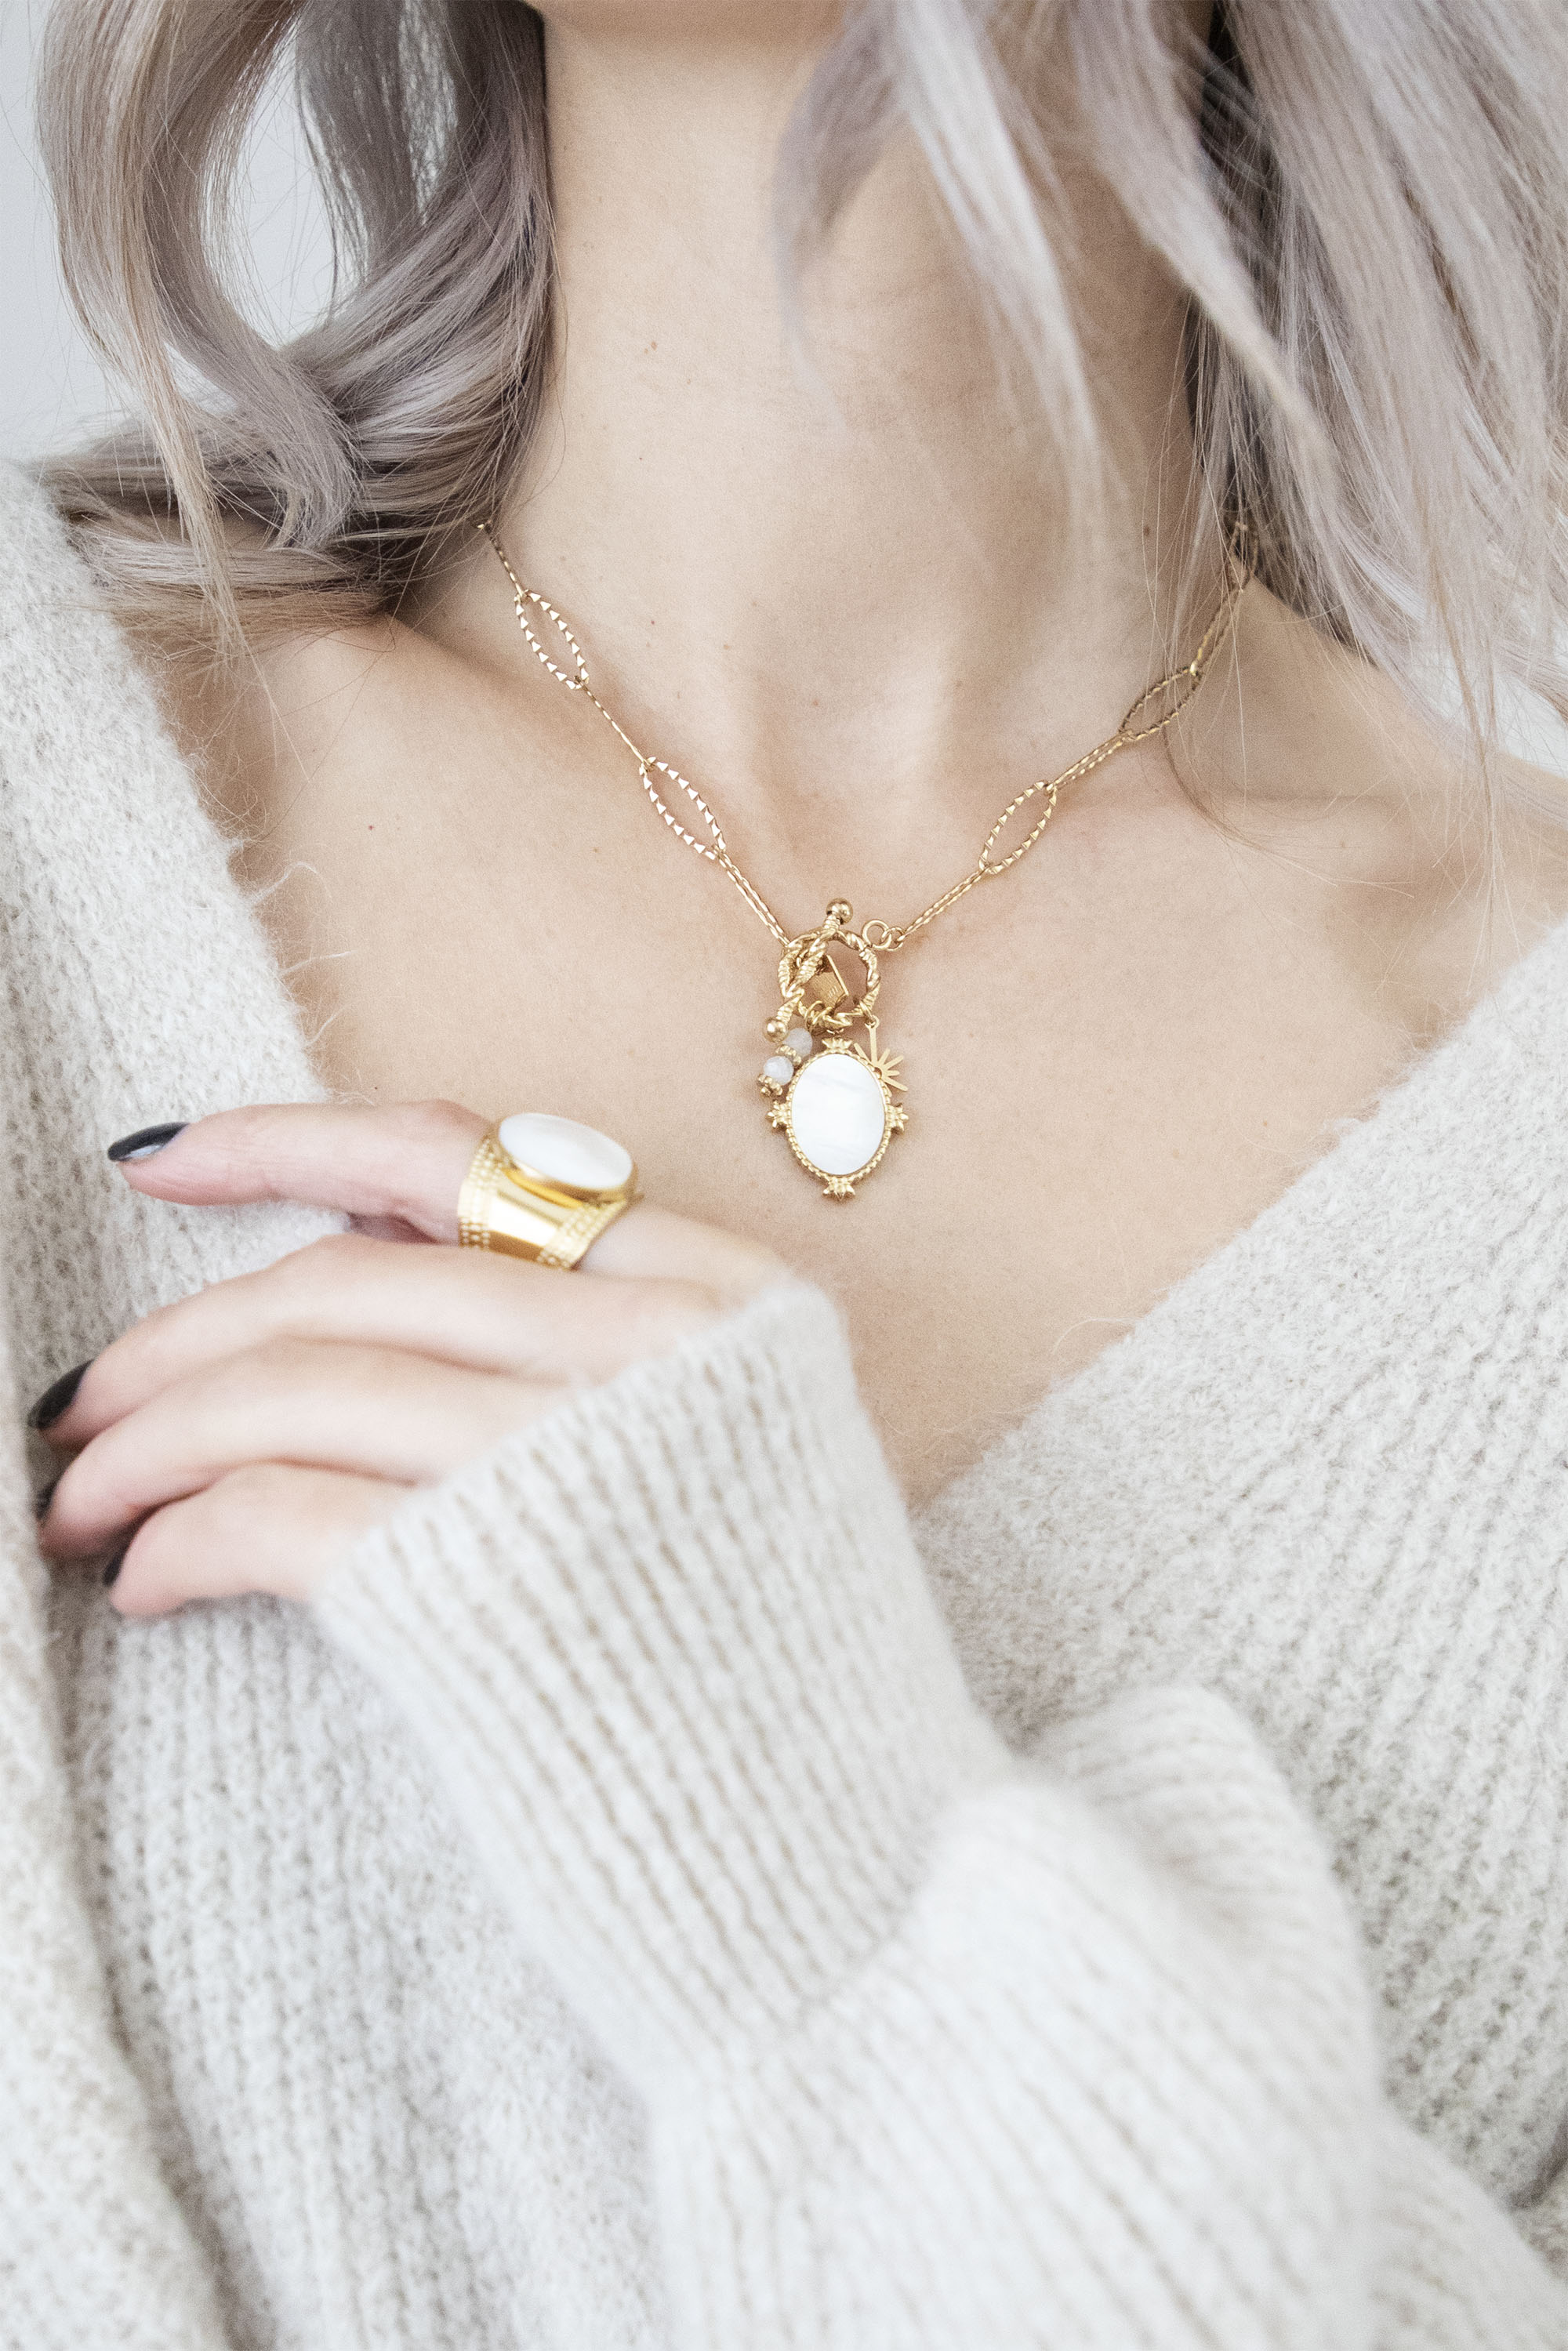 Mirror Check Pearly/Gold - Ketting